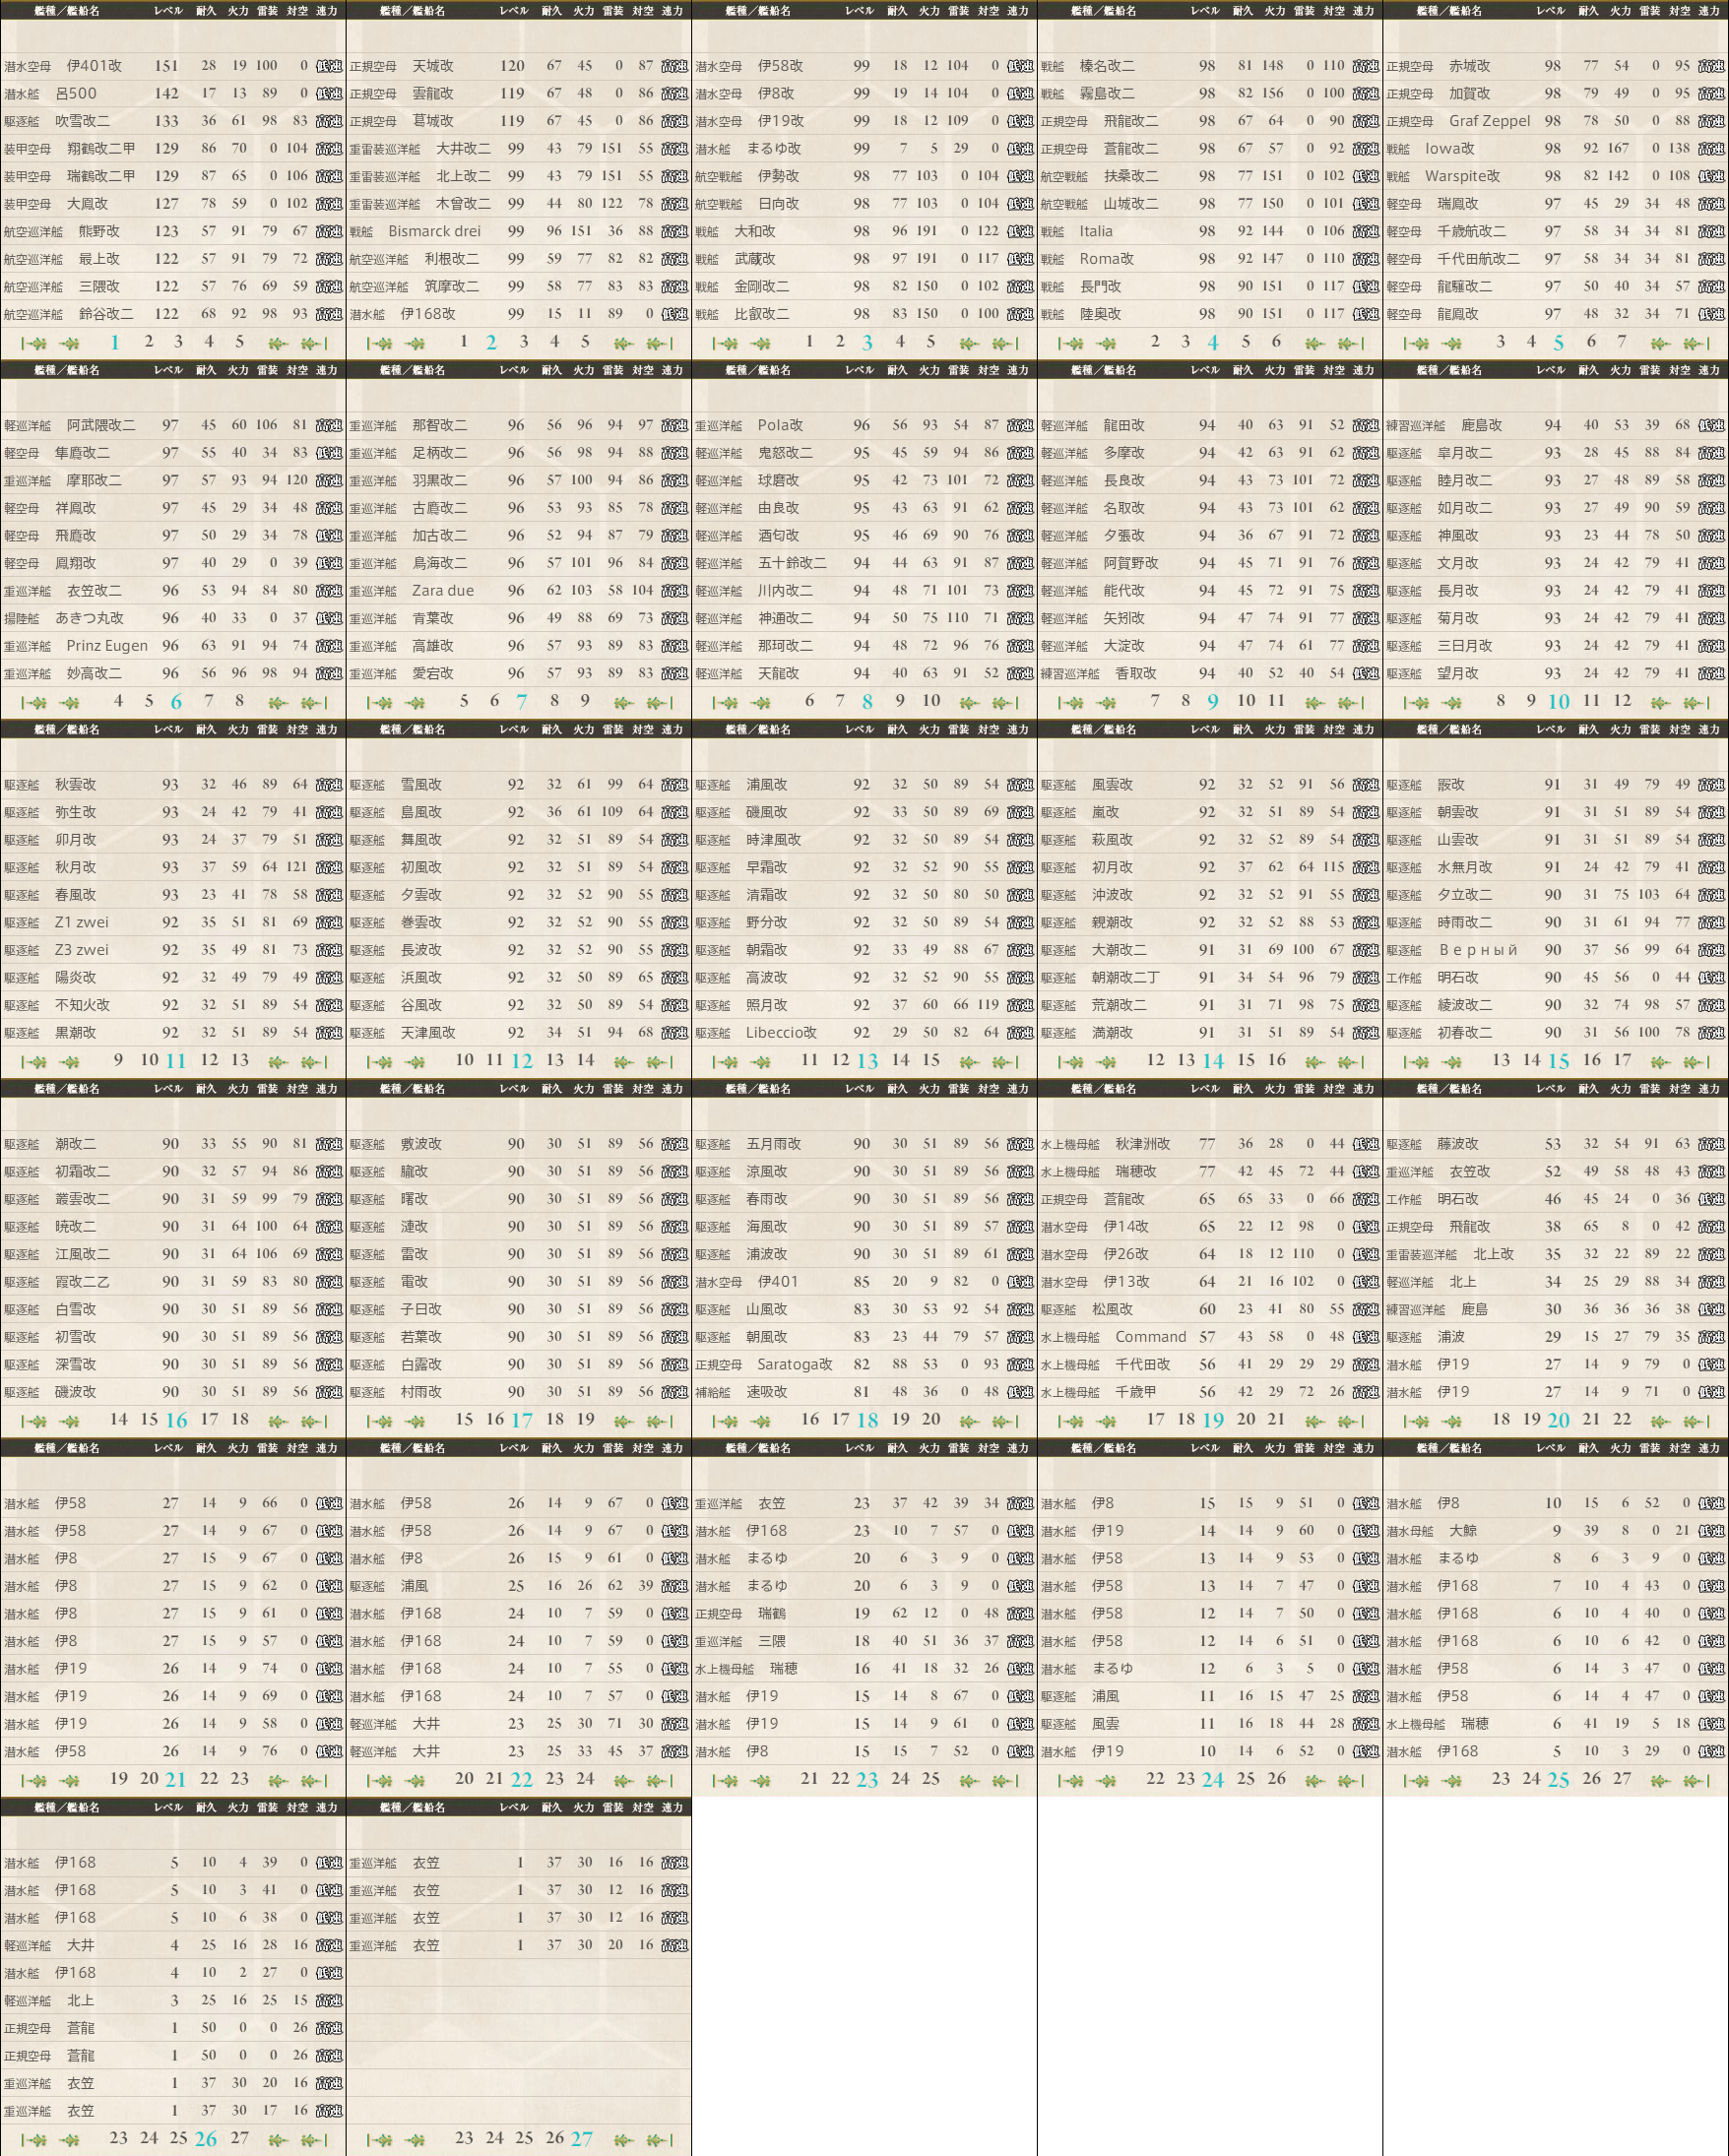 data.kancolle.levelsort.20170409.png